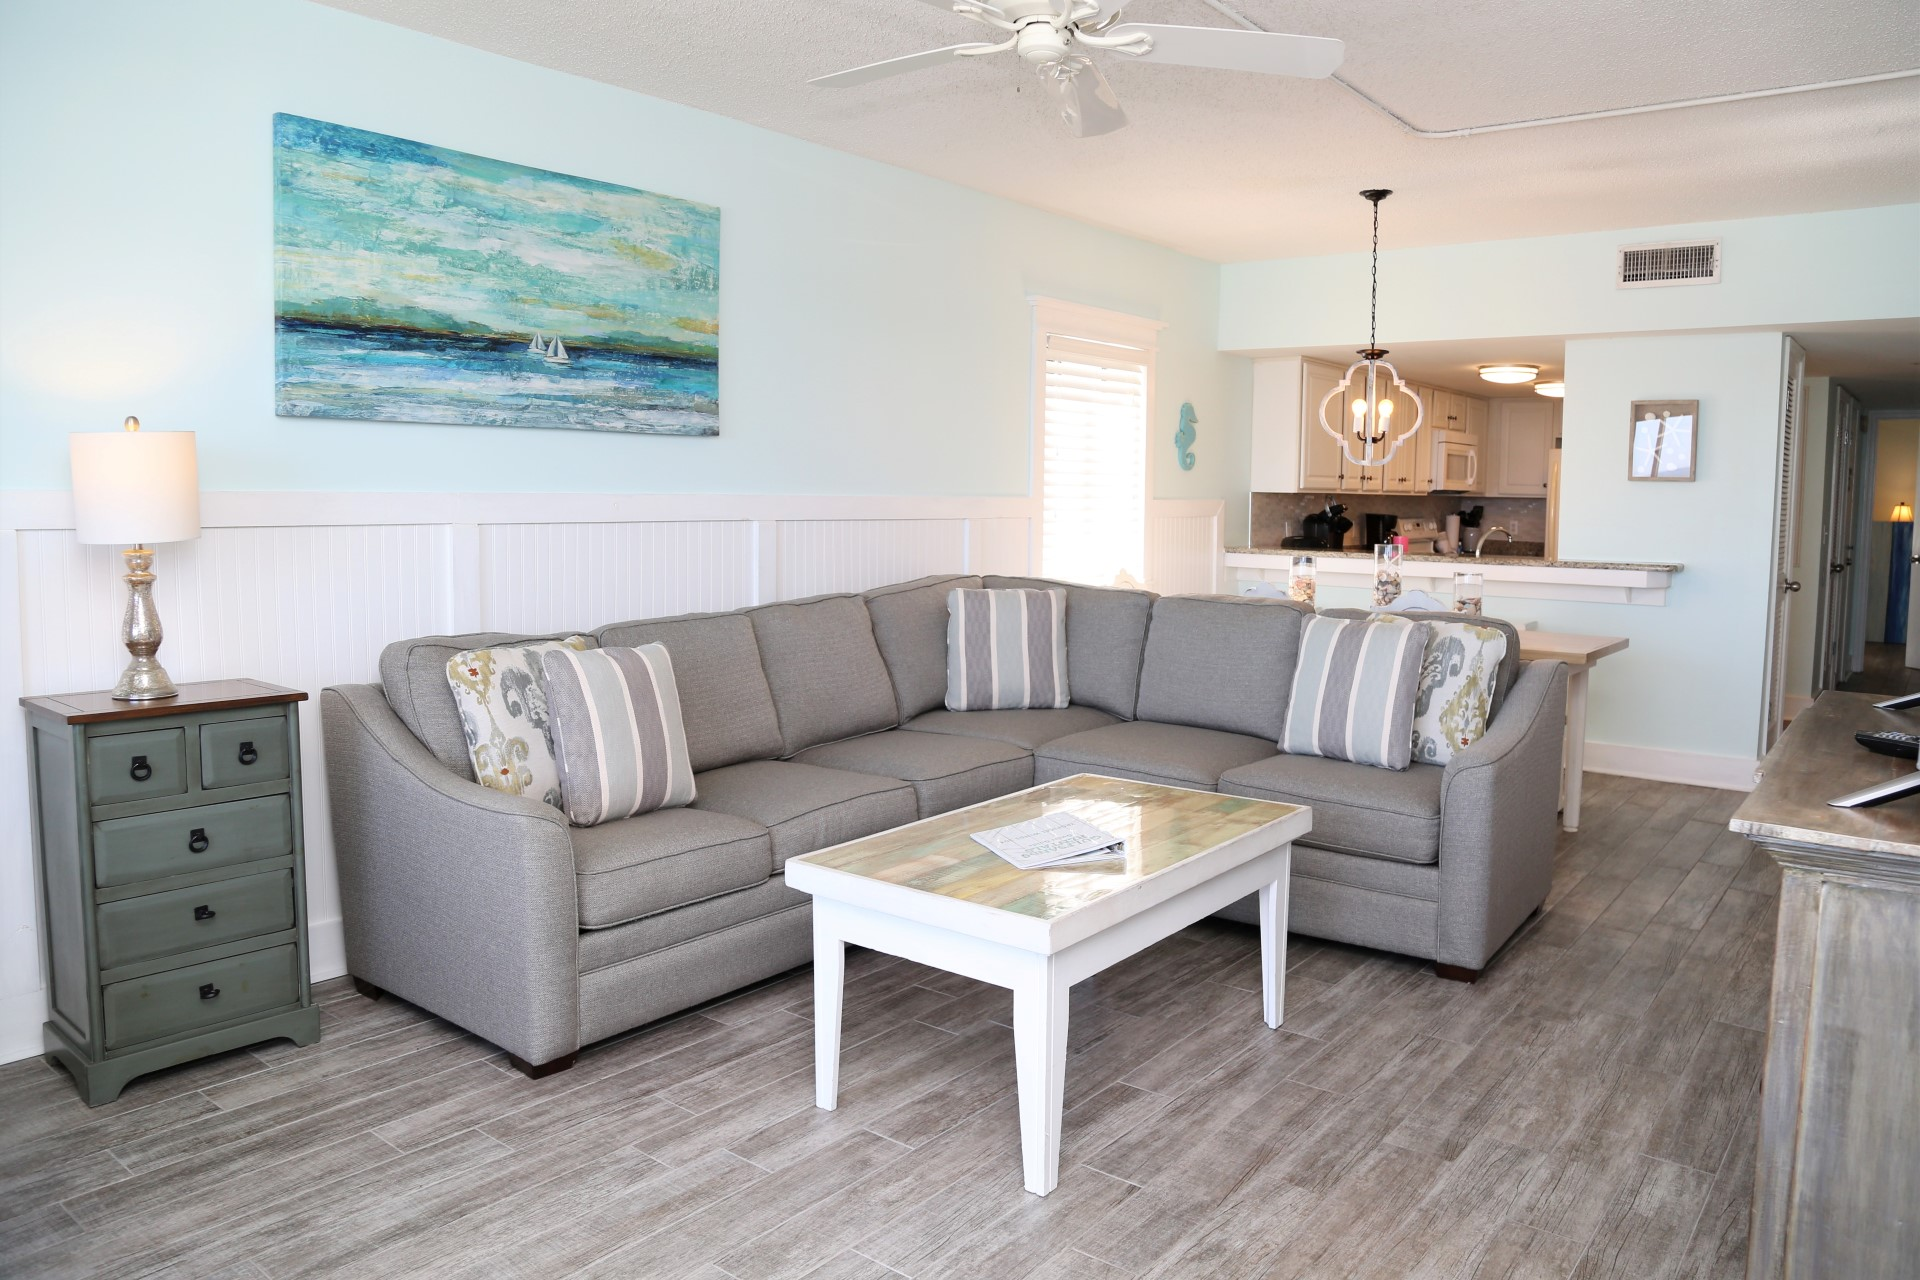 Tropical Winds 304 - Spacious Living Area Seating